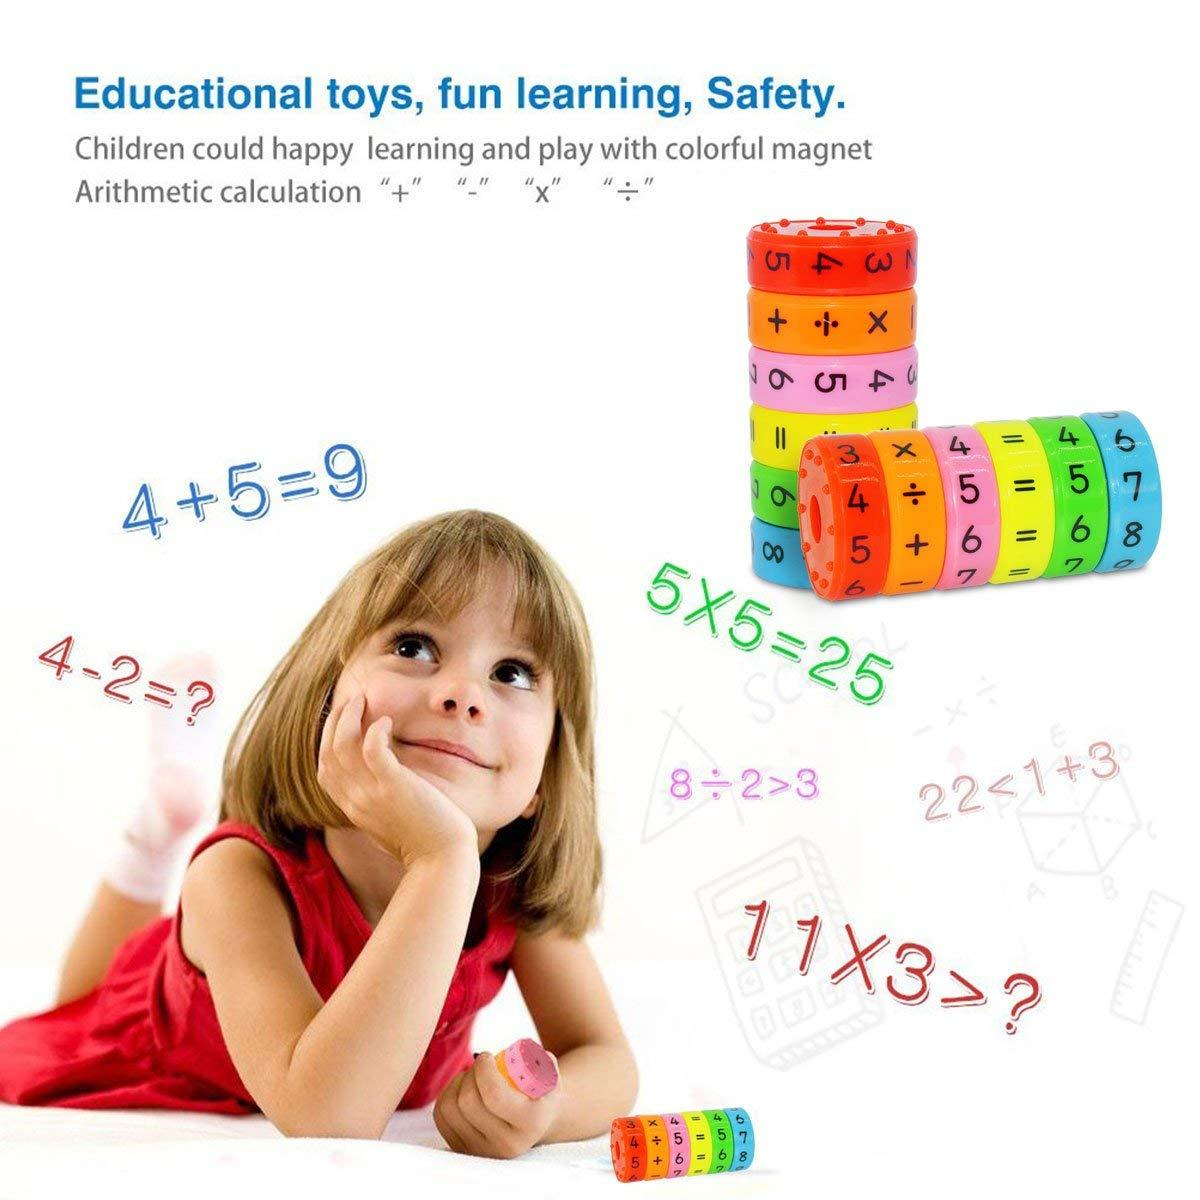 1 Set Magnetic Math Learning Toys, Magnetic Numbers and Symbols Mathematics Skills Set Arithmetic Educational Building Blocks Gifts for Kids